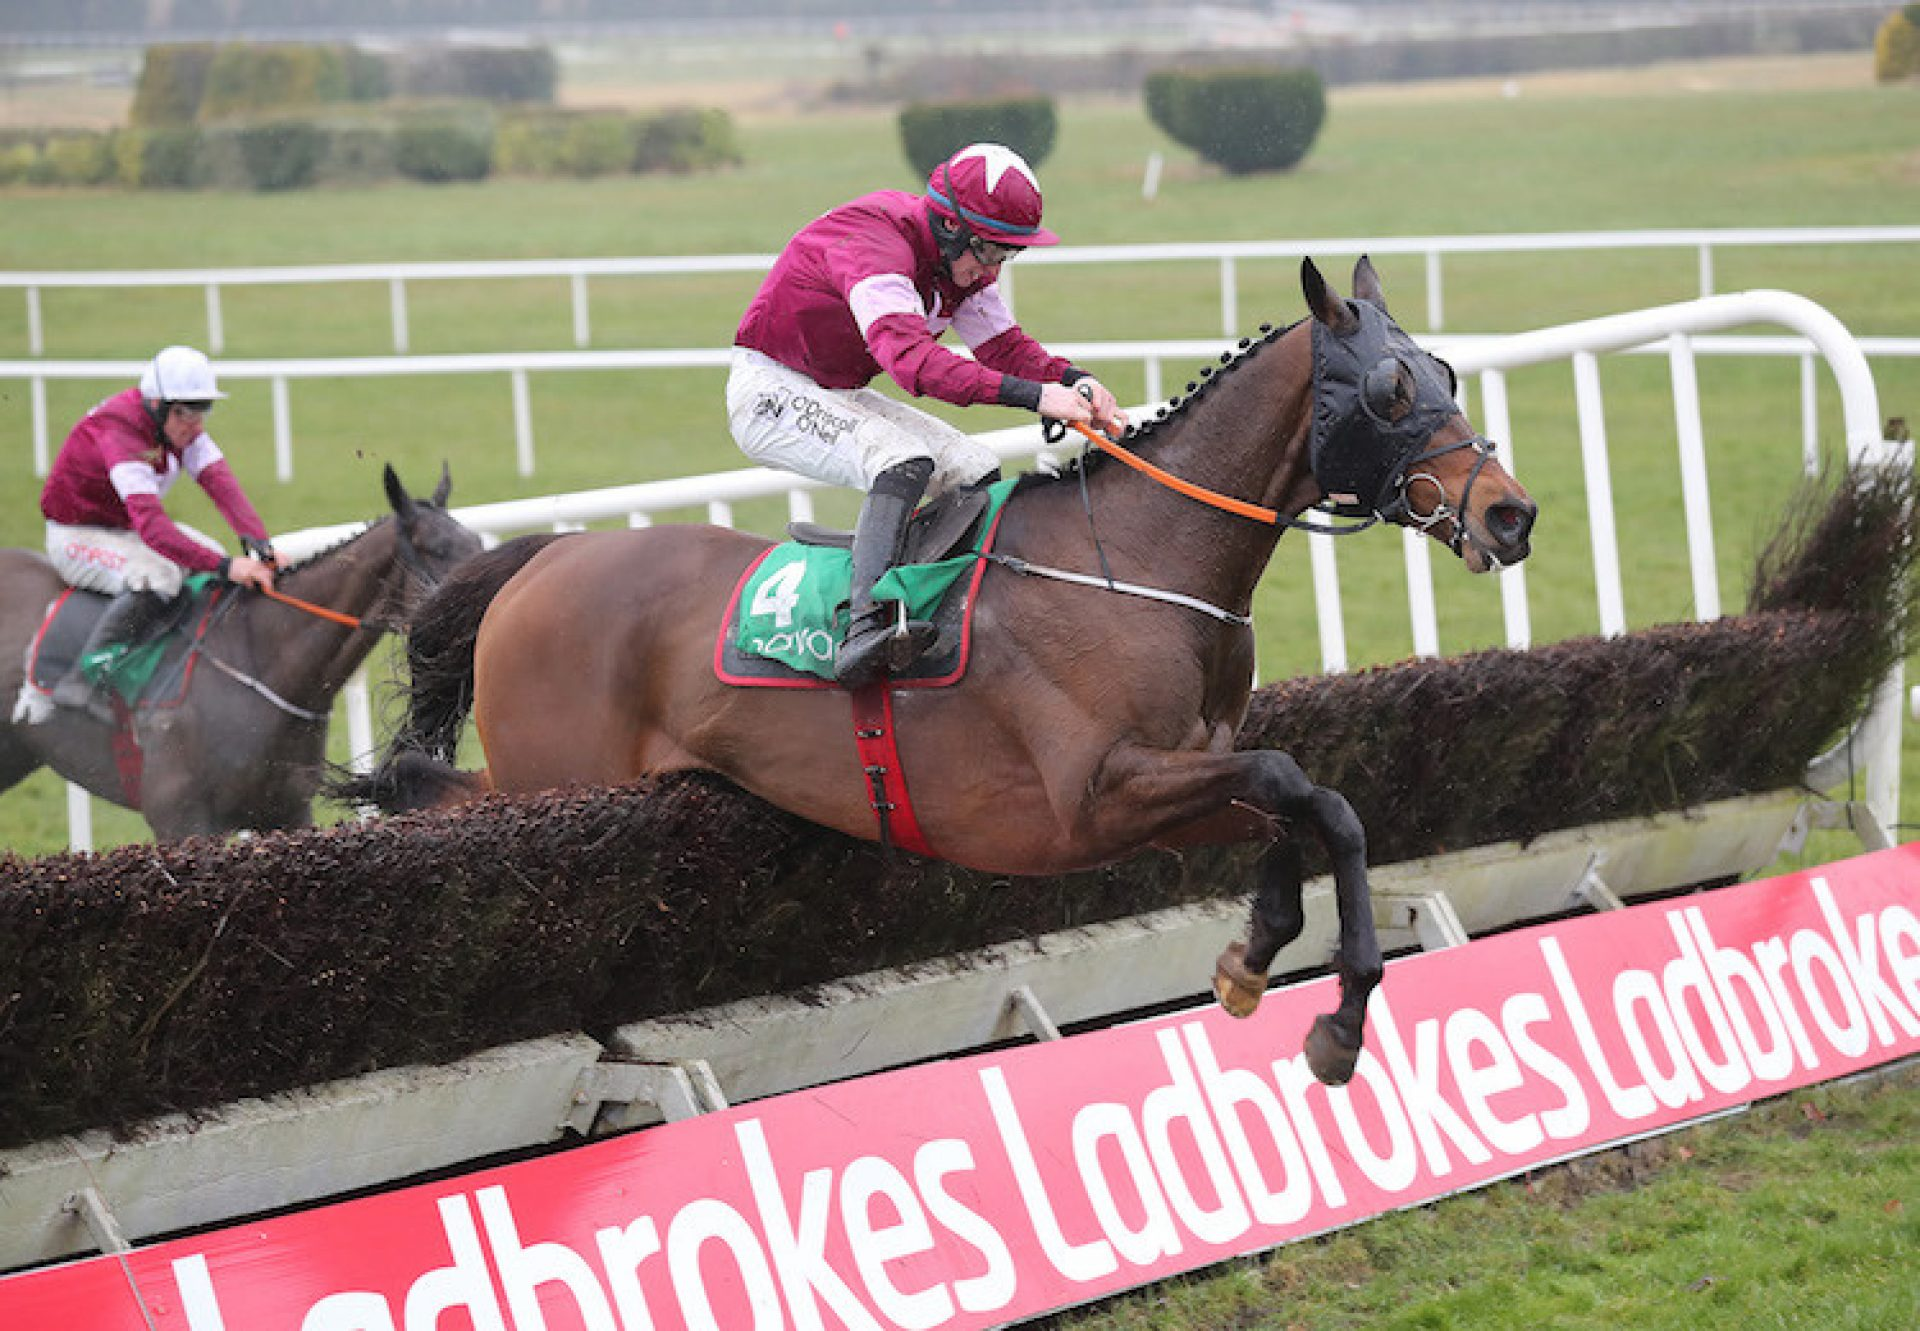 Monbeg Notorious (Milan) winning the G2 Ten Up Novice Chase at Navan